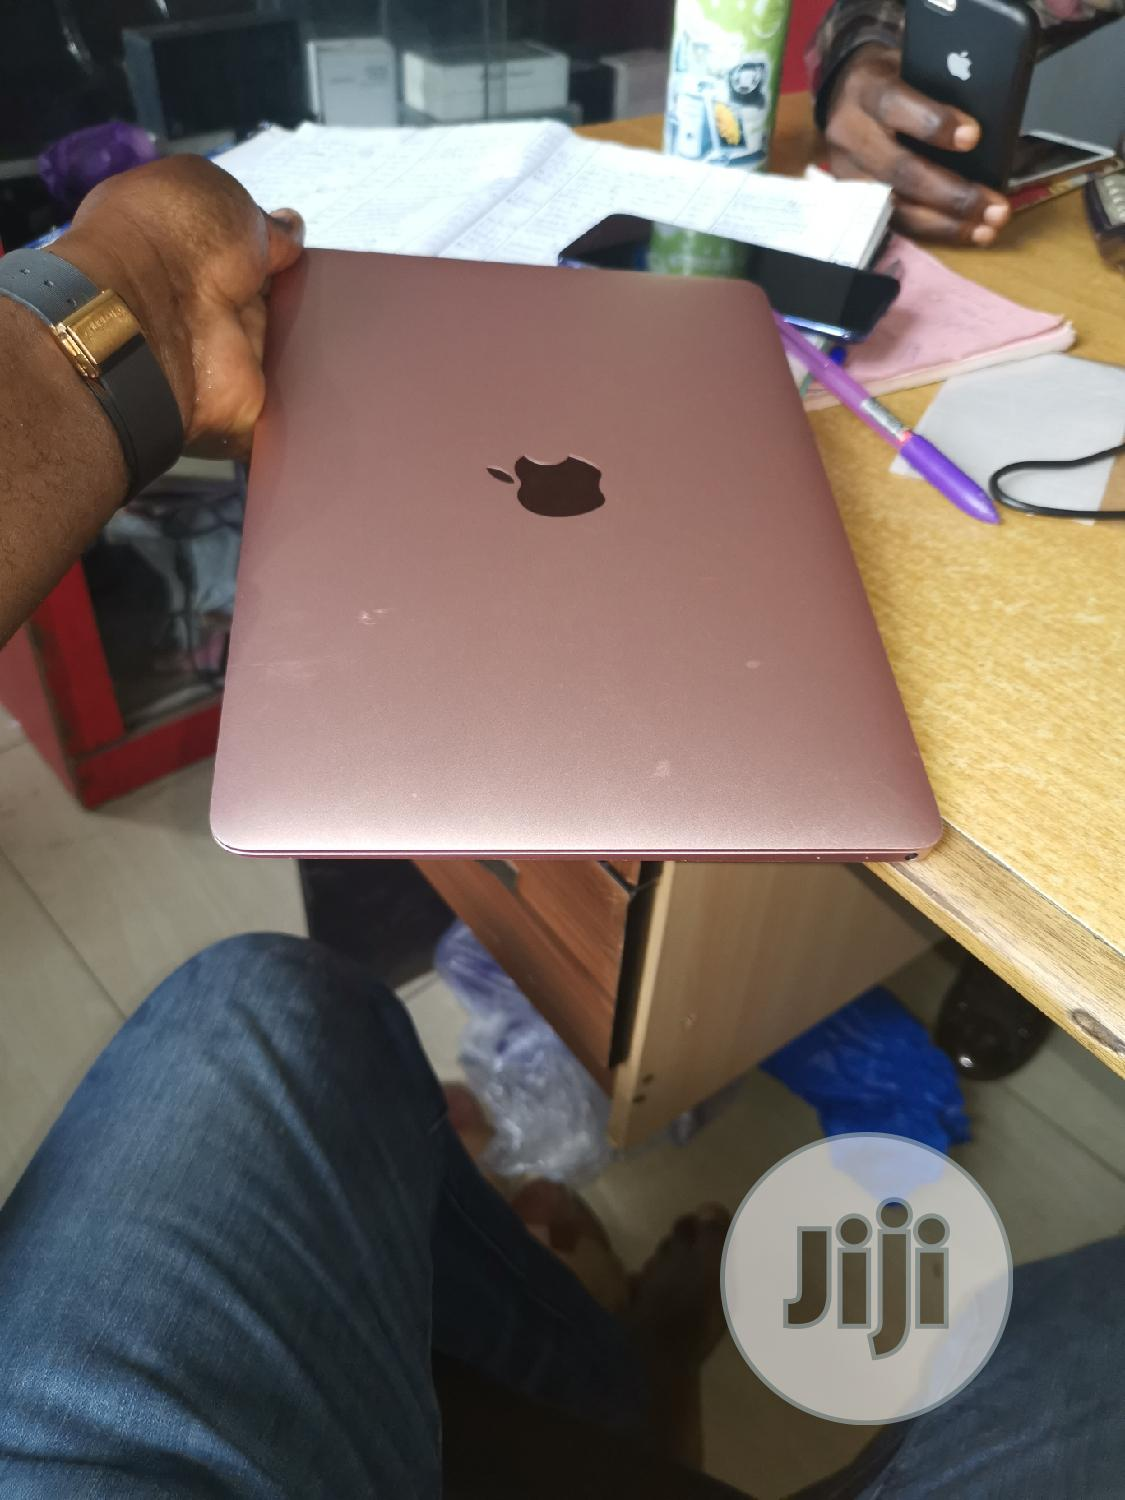 Laptop Apple MacBook 8GB Intel Core i5 HDD 500GB   Laptops & Computers for sale in Ikeja, Lagos State, Nigeria